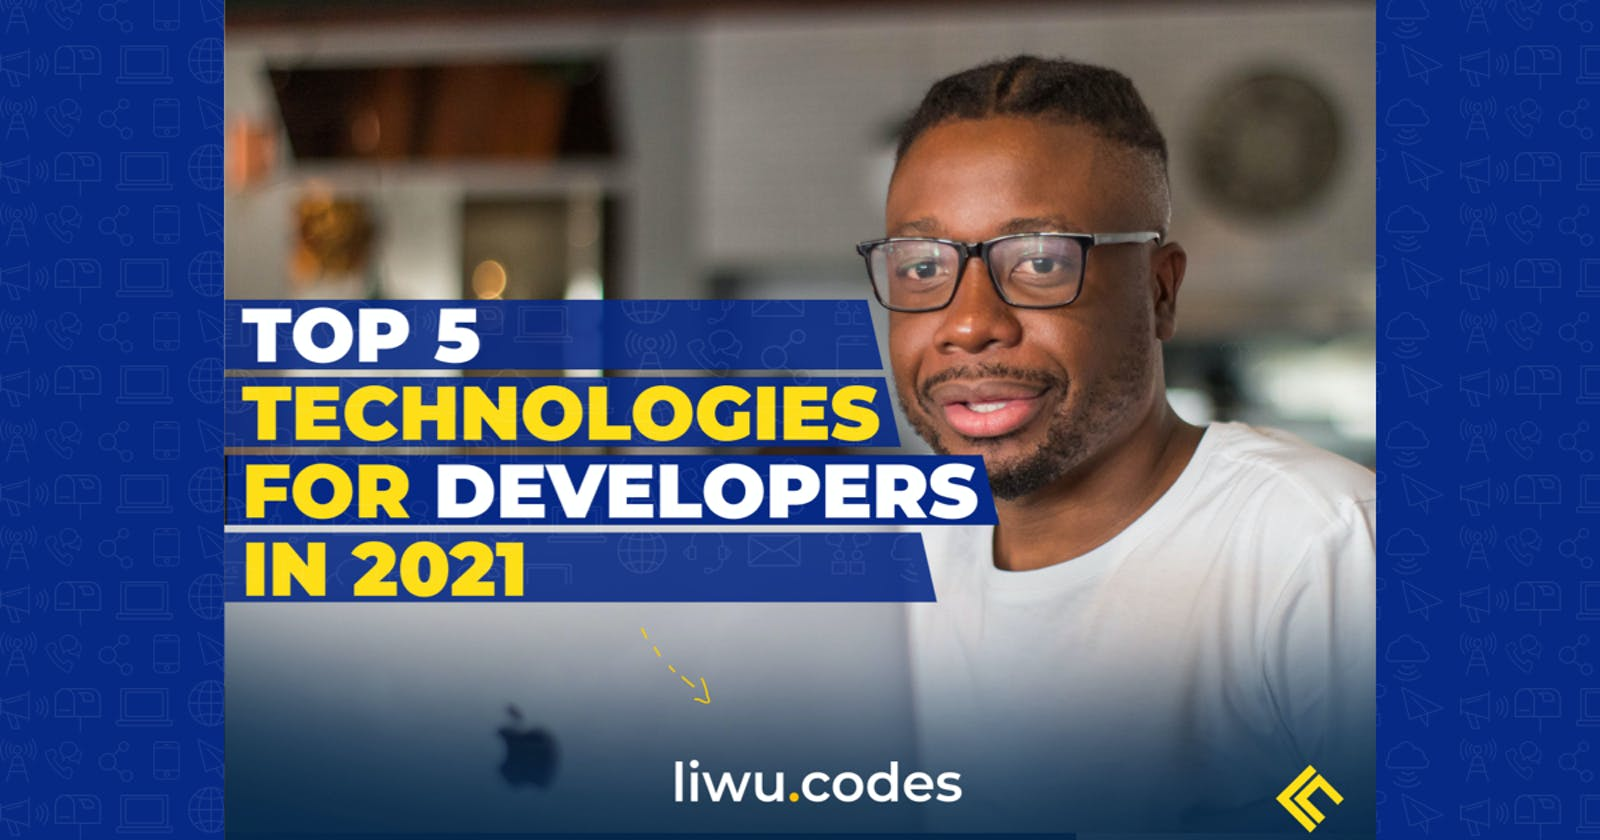 Top 5 Technologies for Developers in 2021